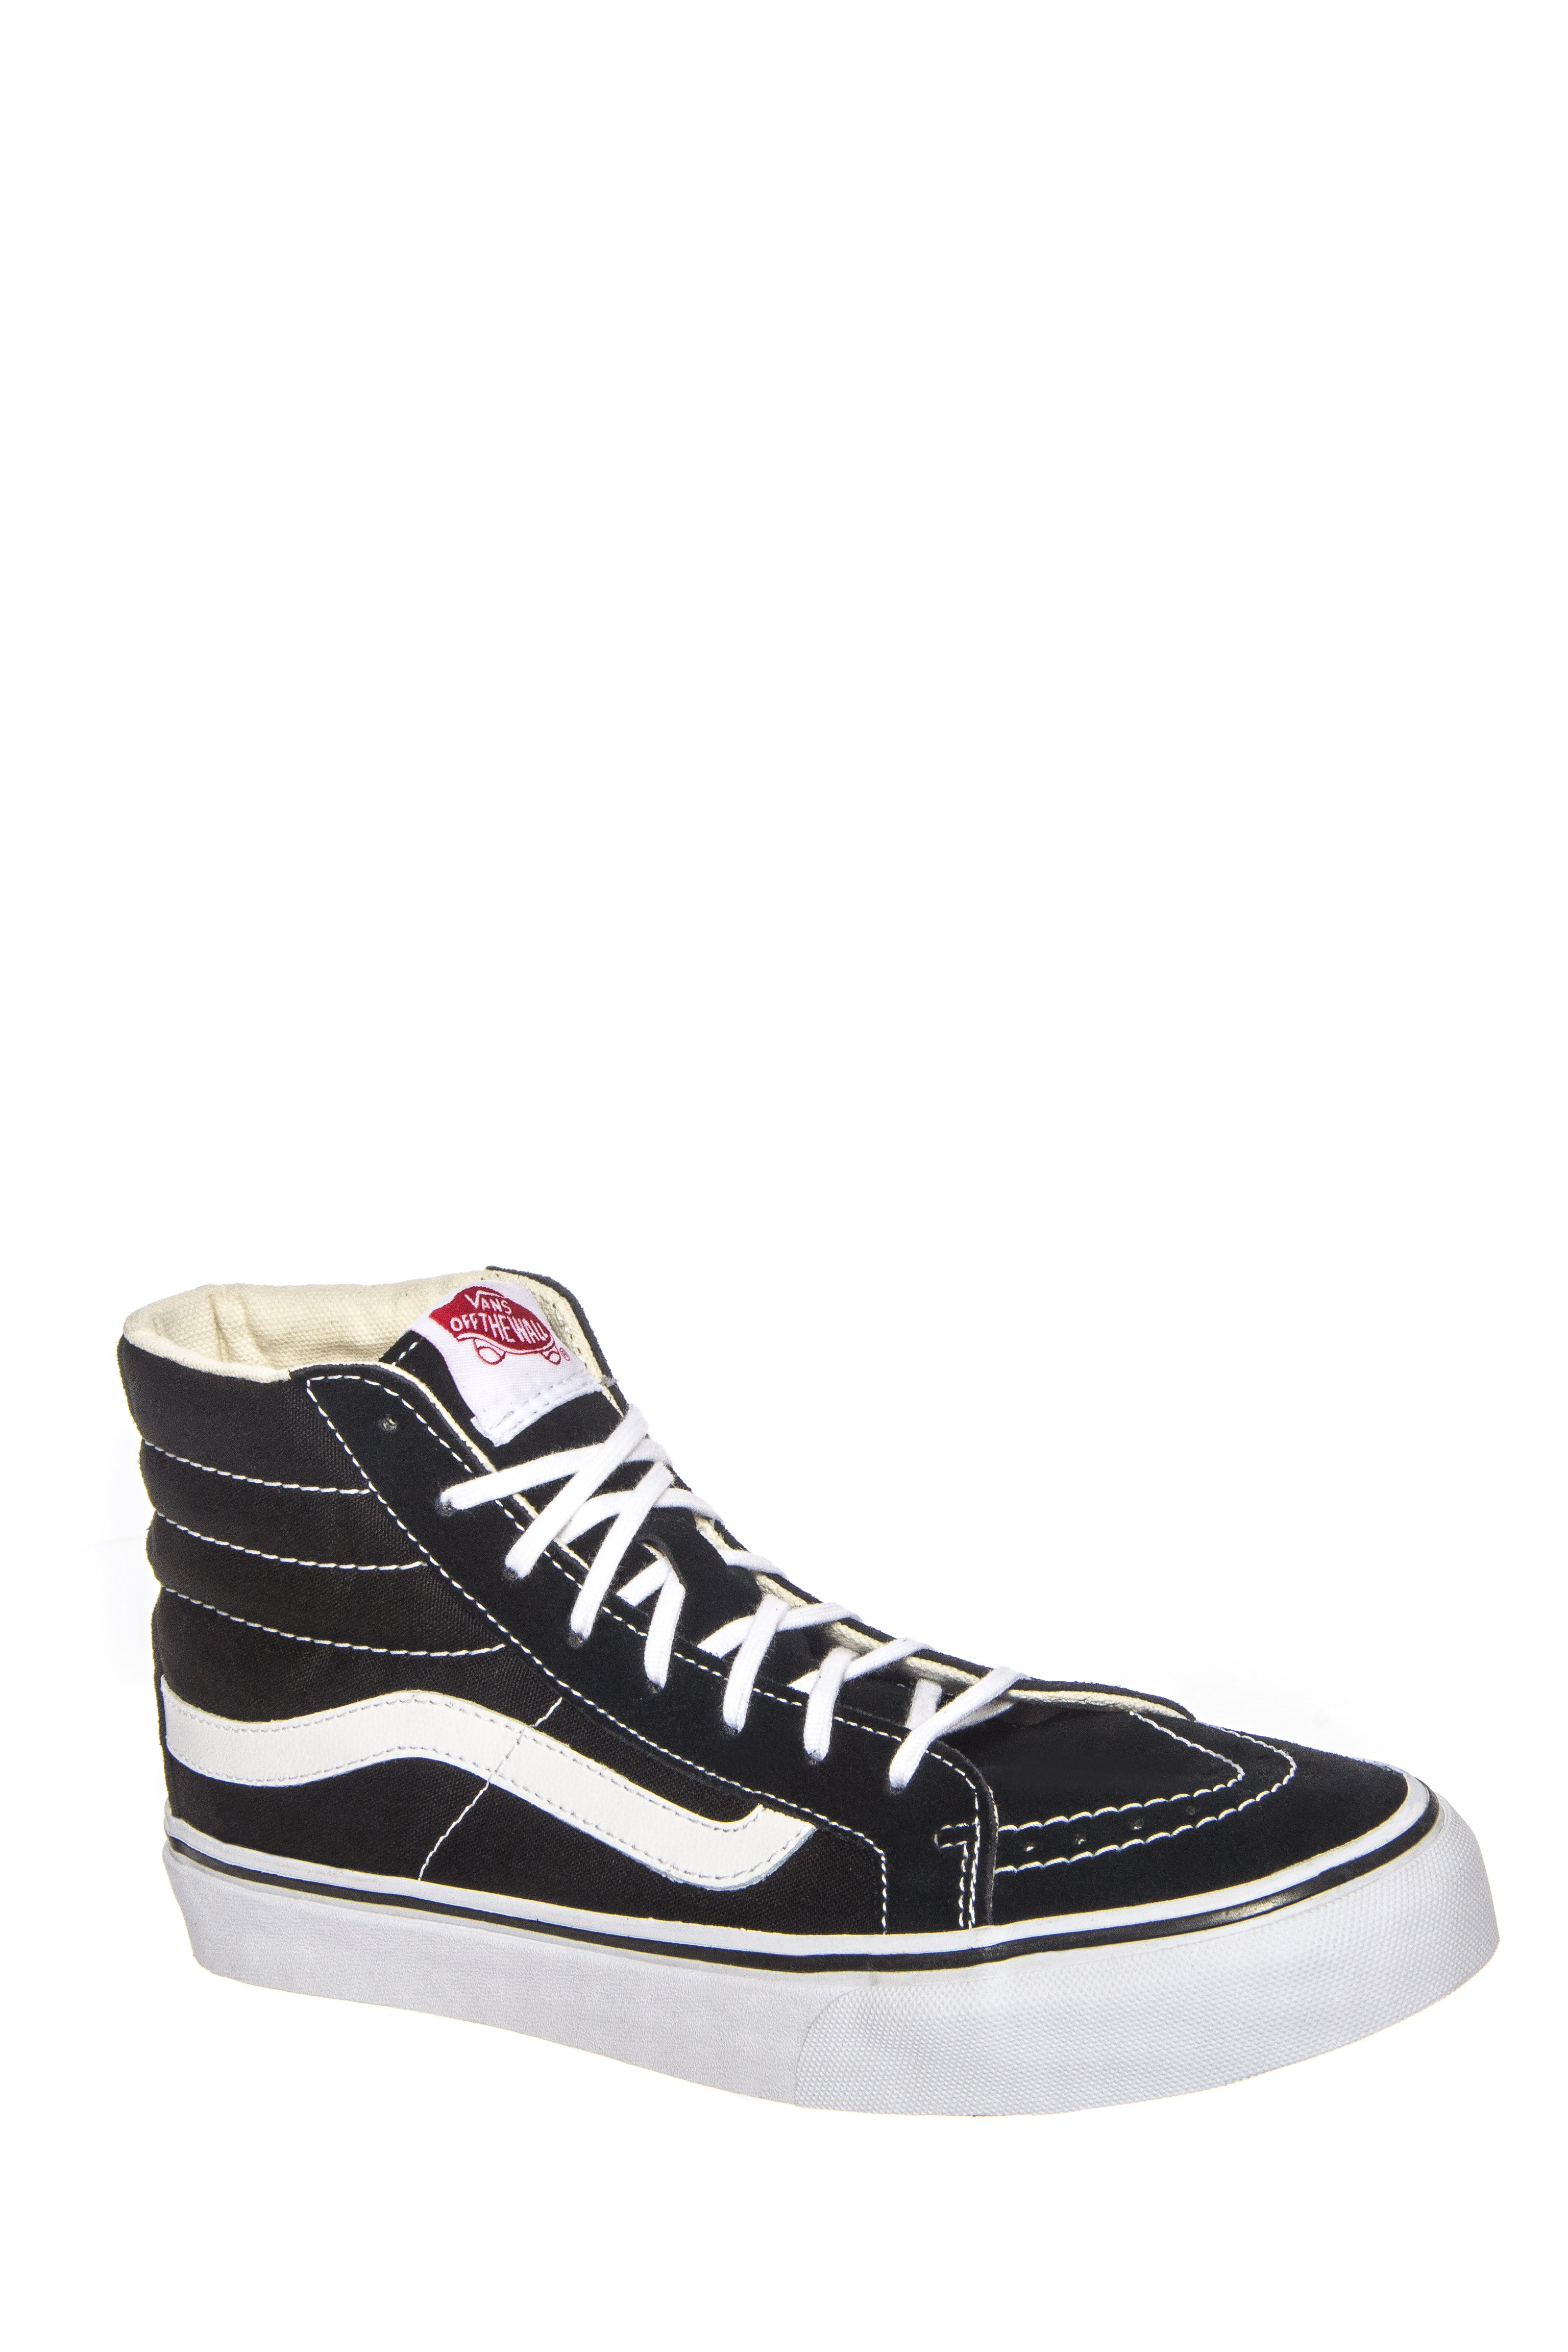 Vans Sk8-Hi Slim High Top Sneakers - Black / White